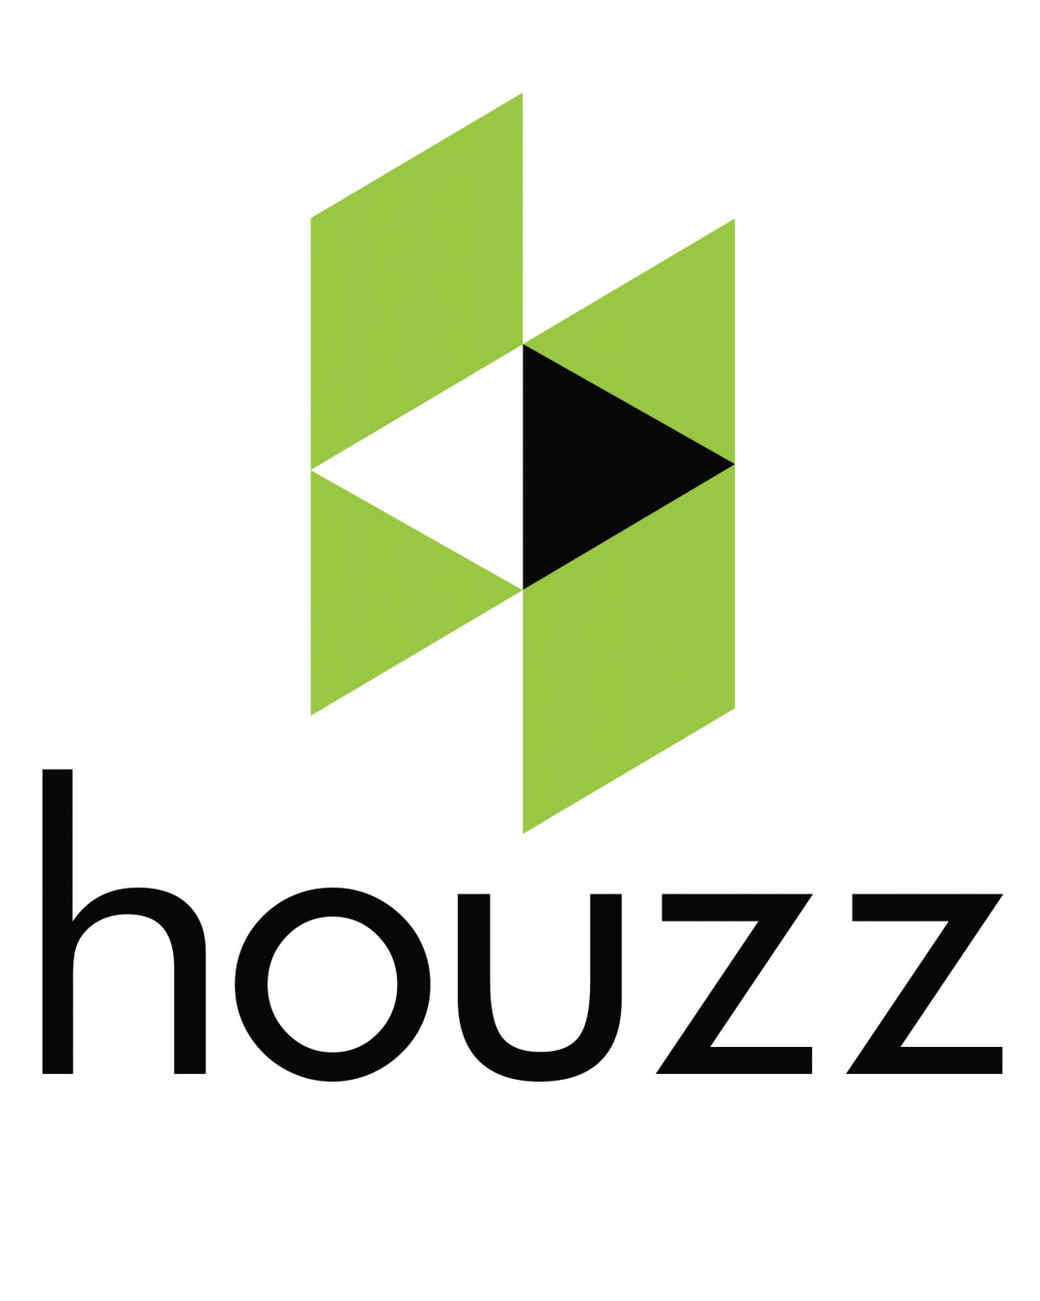 thd-houzzlogo-kitchensthatwork-0315.jpg